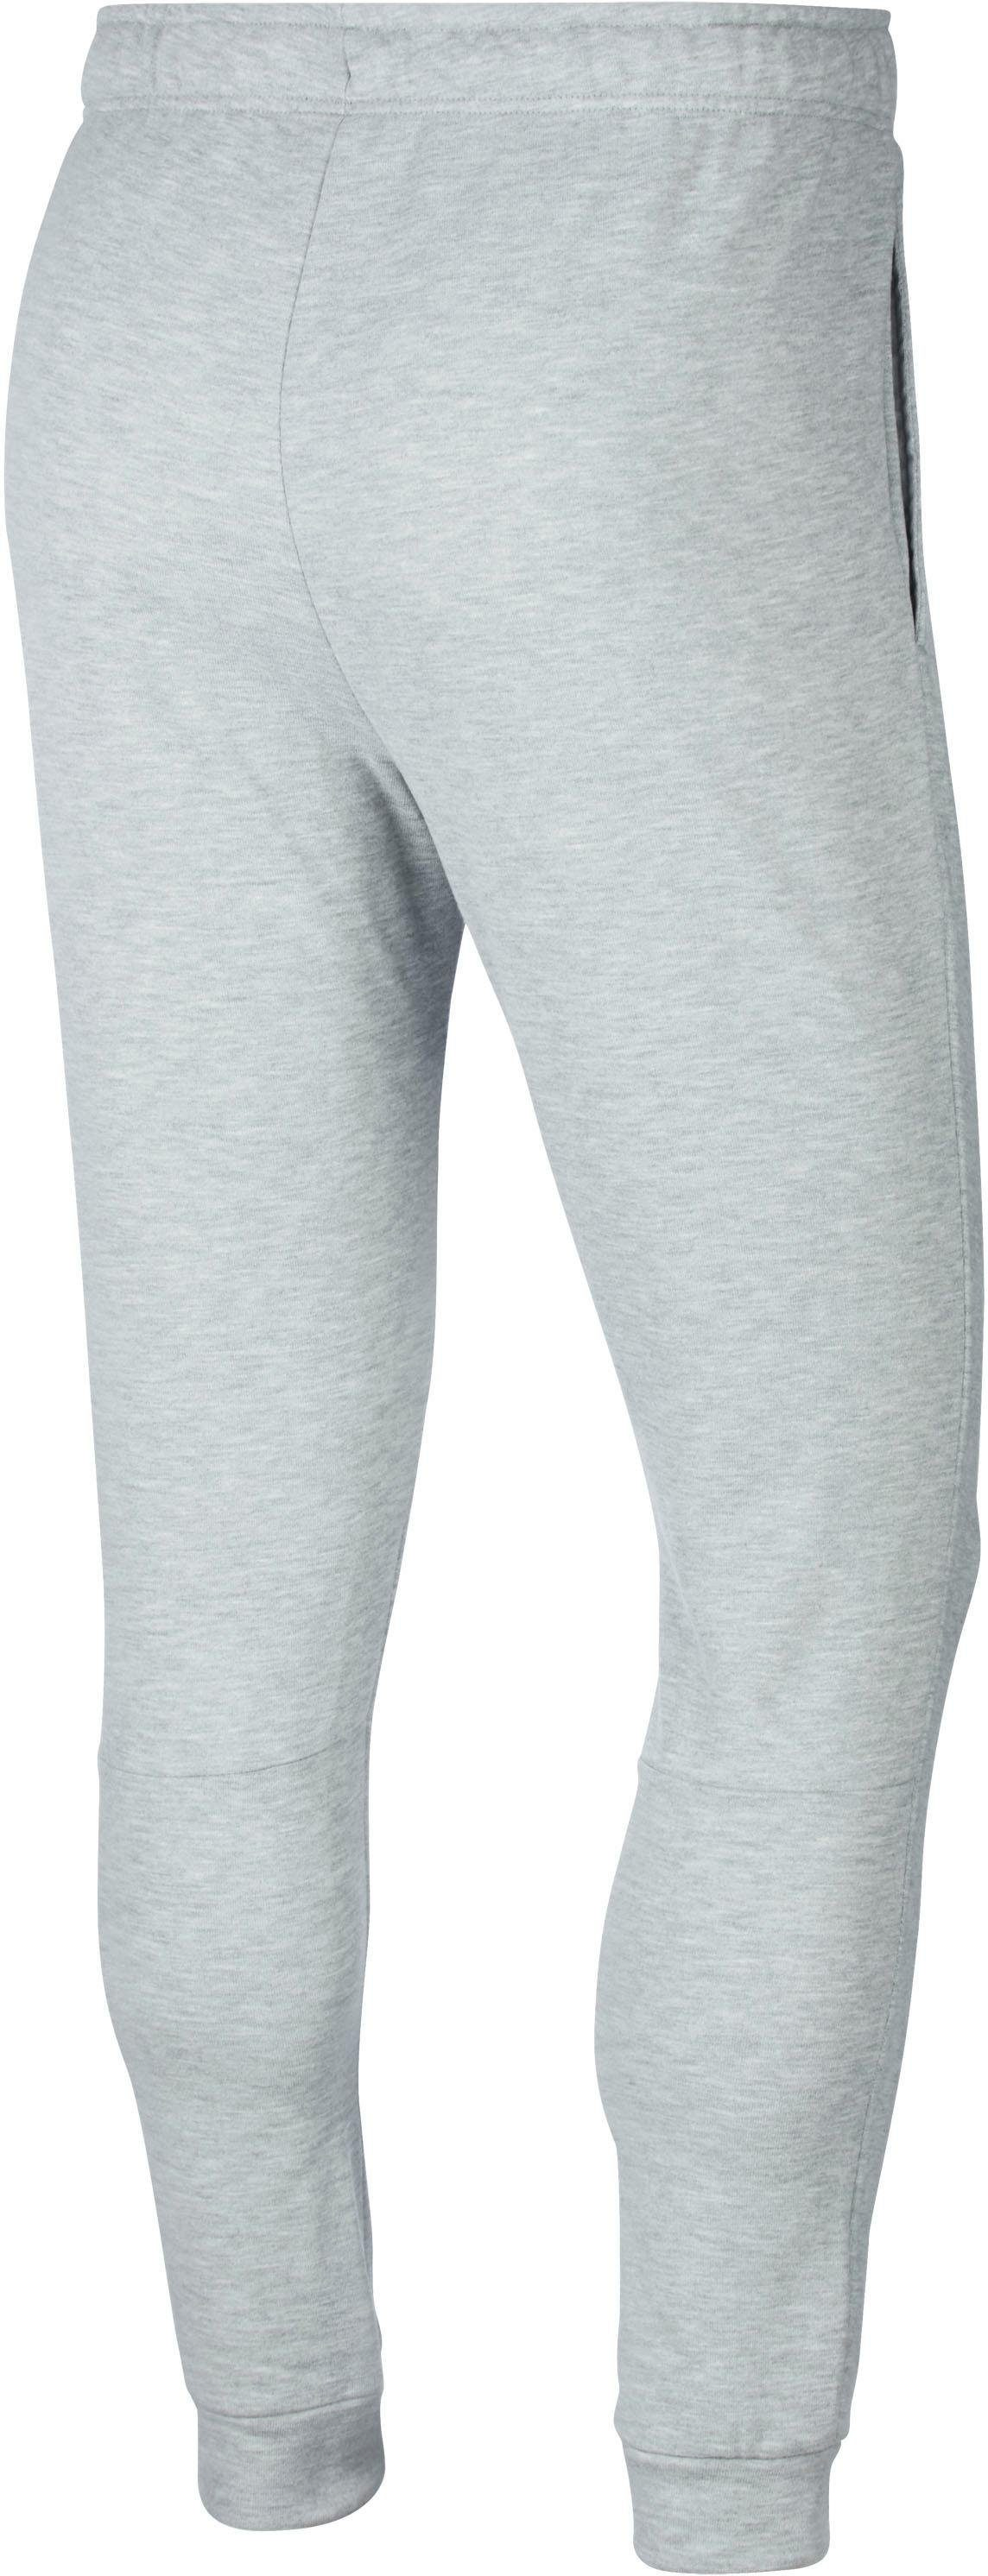 Nike trainingsbroek »Nike Dri FIT Men's Fleece Training Pants«